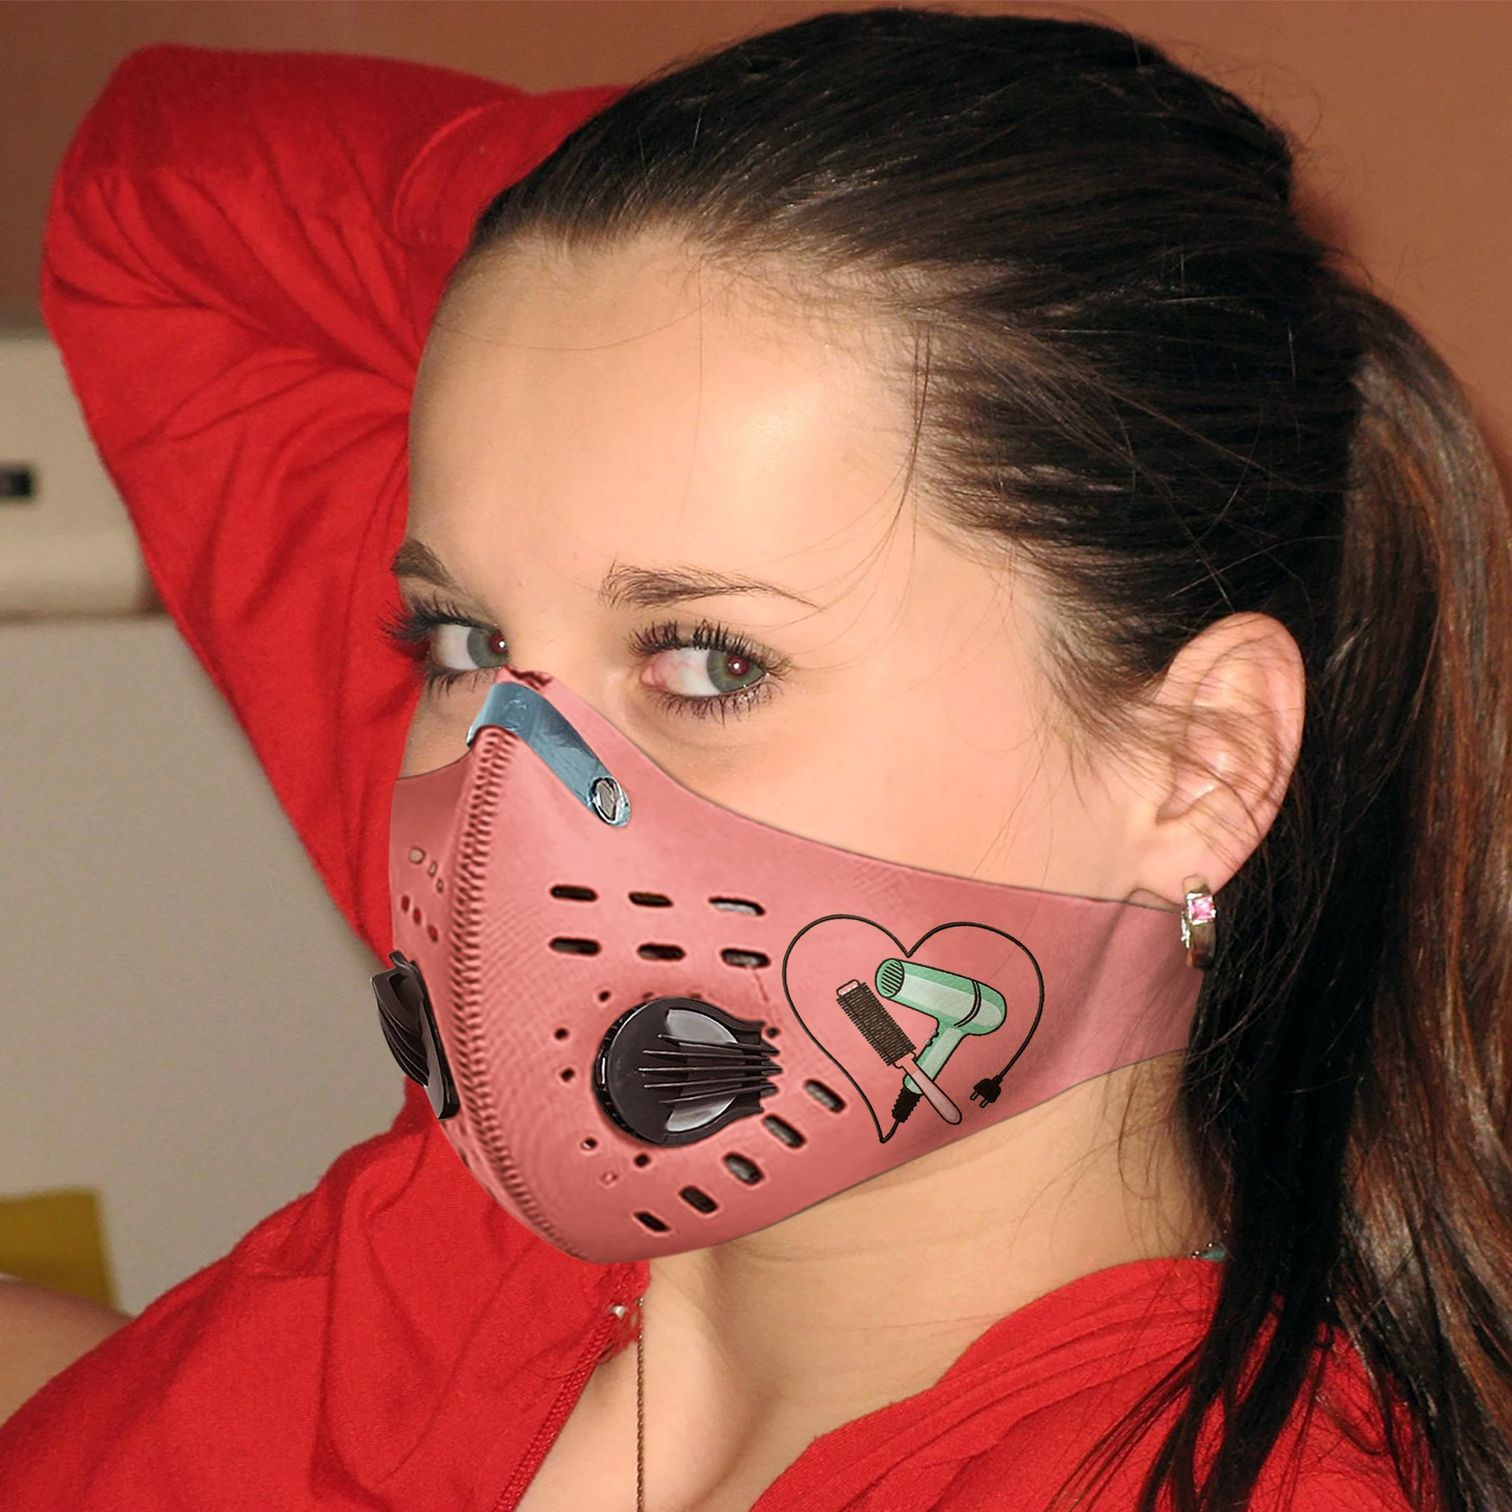 Hair salon hairstylist with carbon pm 2,5 face mask 2